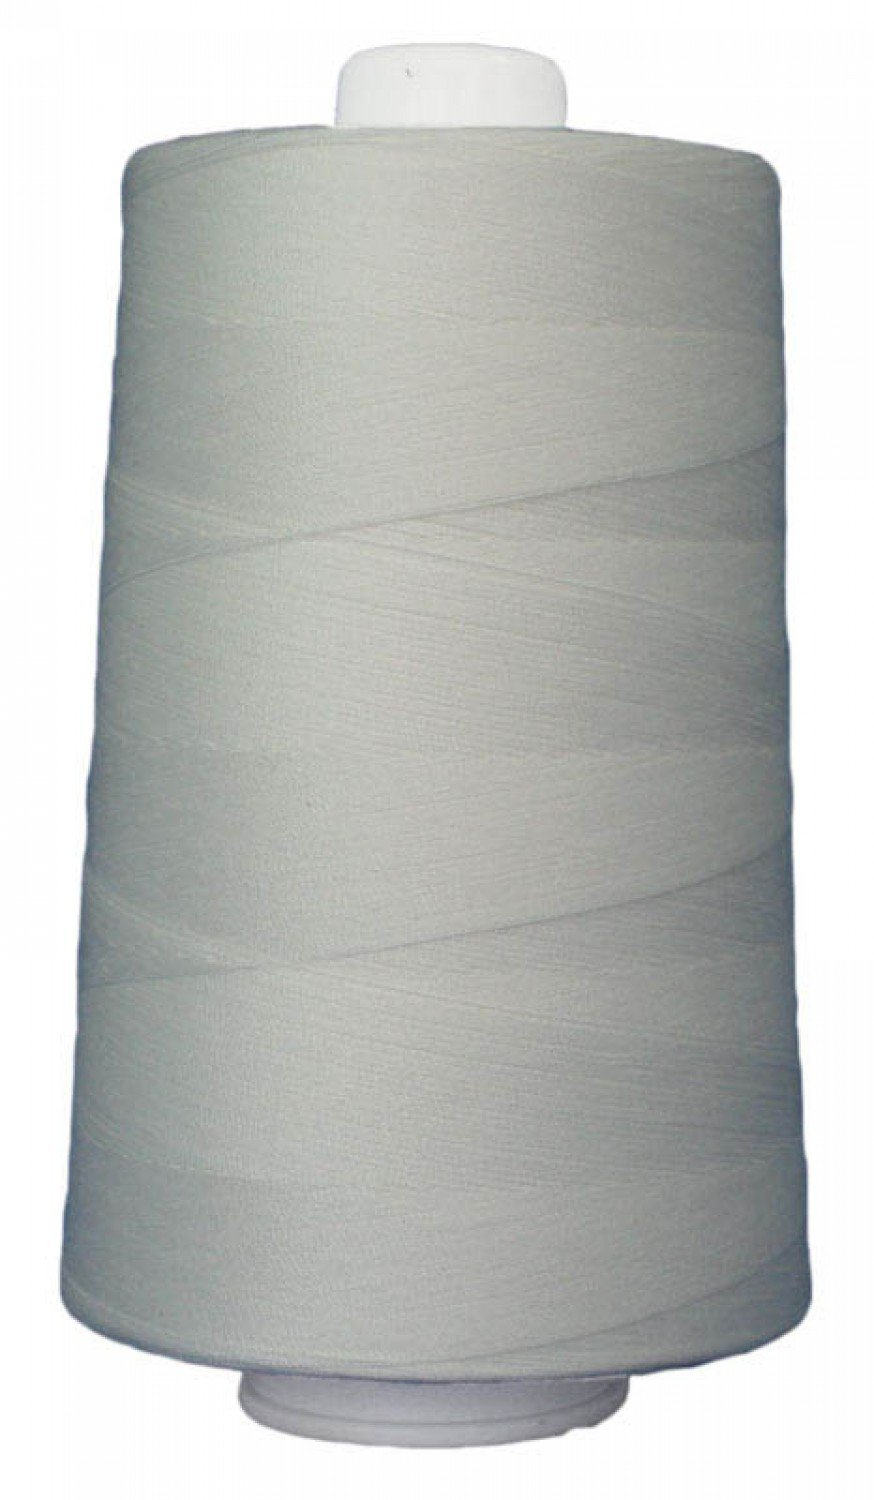 OMNI Polyester Thread 40 wt 6000 yds 3002 Natural White by Superior